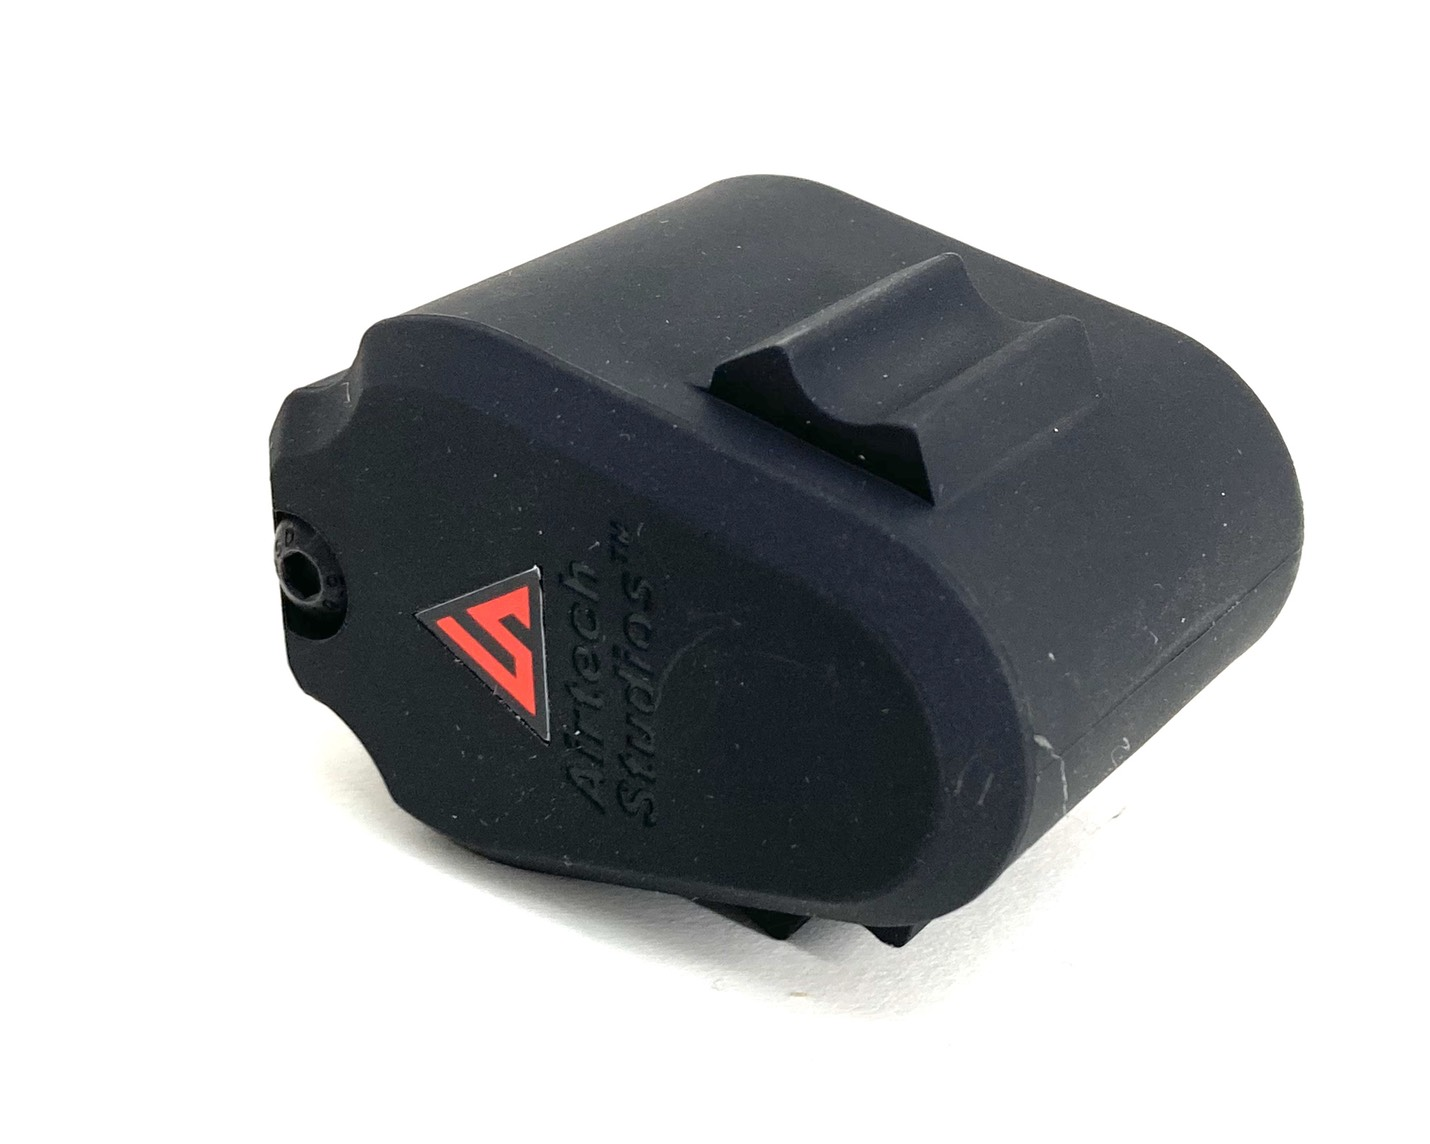 Airtech Studios Battery Extension units BEUs for Krytac Trident MKII PDW & Alpha SDP